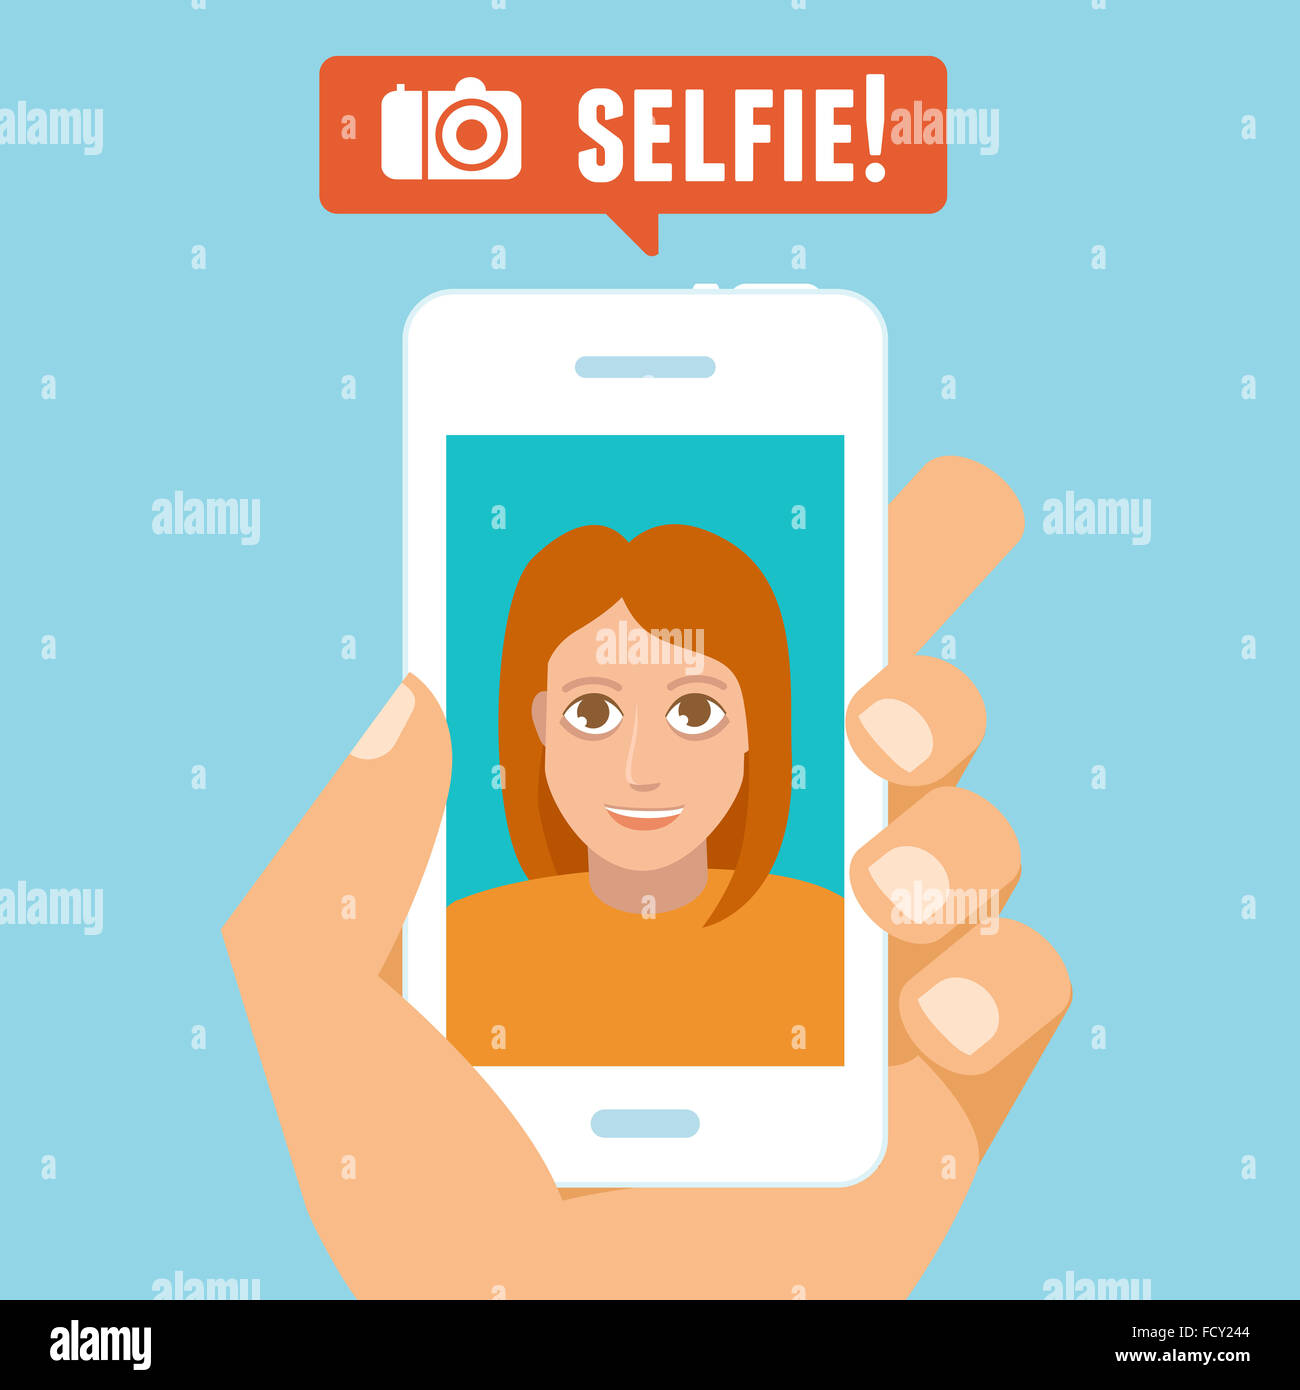 Selfie concept - flat character taking selfie by mobile phone - new technology concept - Stock Image